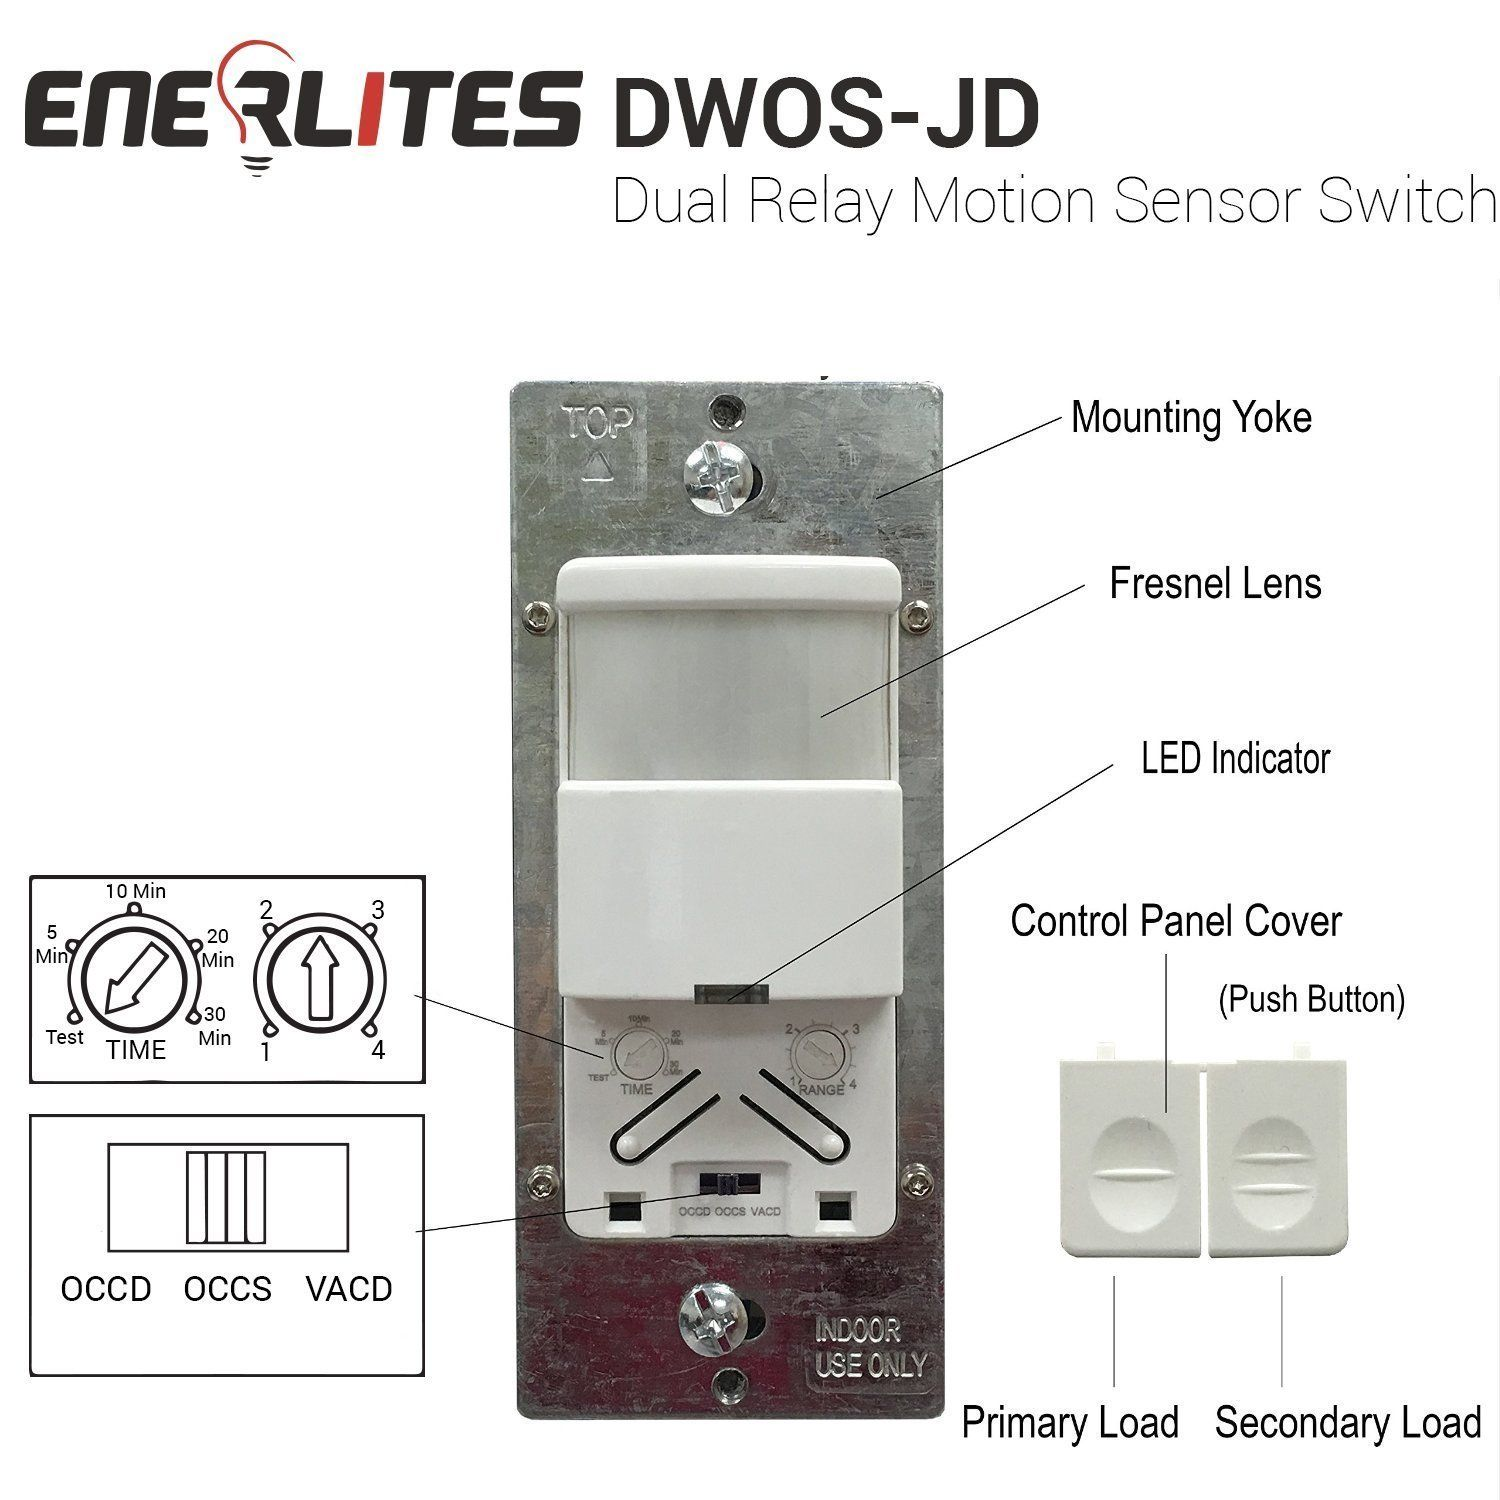 Enerlites Dwos Jd Occupancy Vacancy Dual Relay Motion Sensor Switch Bi Level